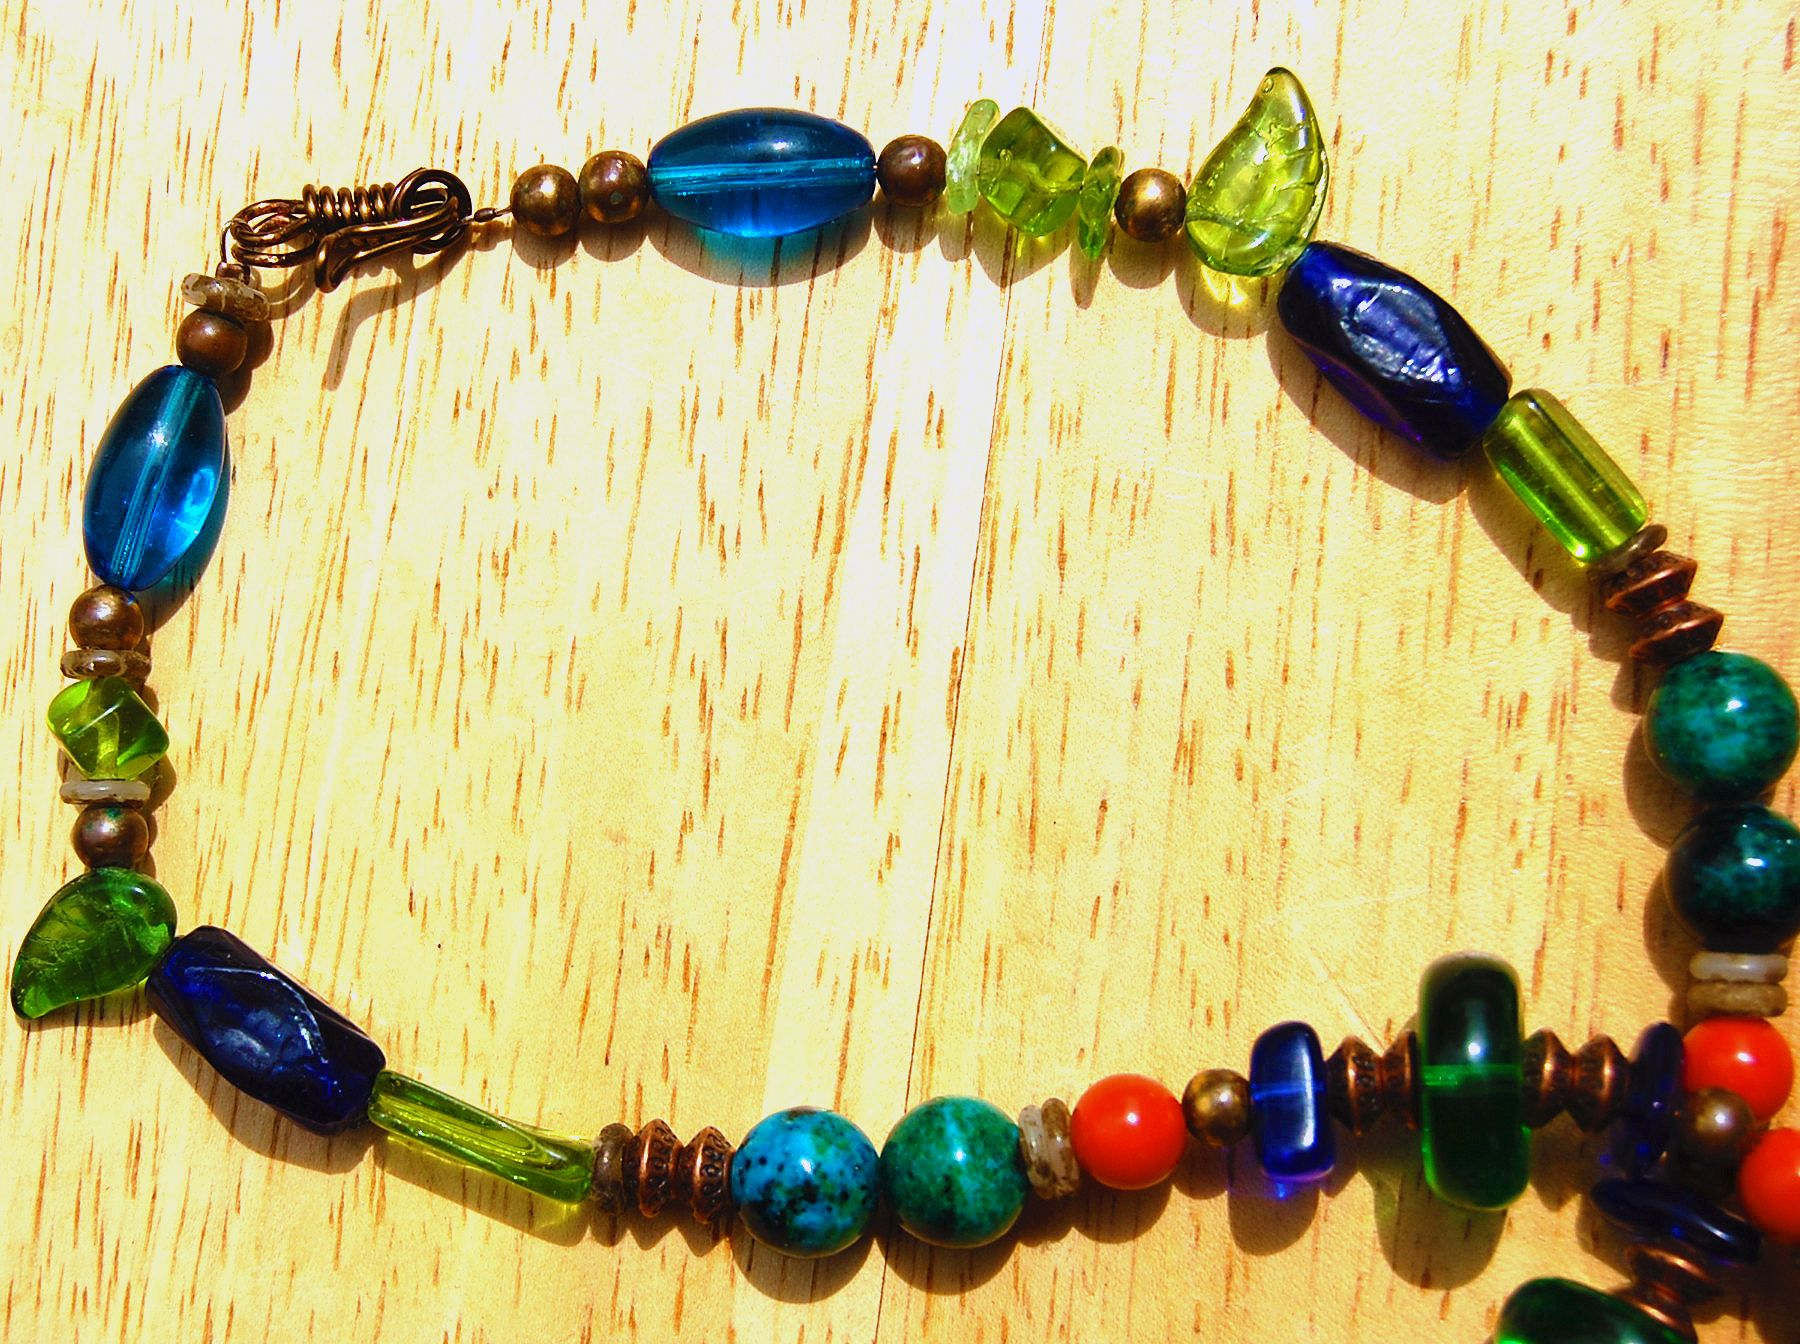 Showing vintage glass beads, antique copper 'saucer' spacers, vintage brass beads, tiny shell spacers and Azurite beads. I made the clasp from antique copper wire. The beads are strung with antique copper coated beaded wire and two antique copper crimping beads were used.